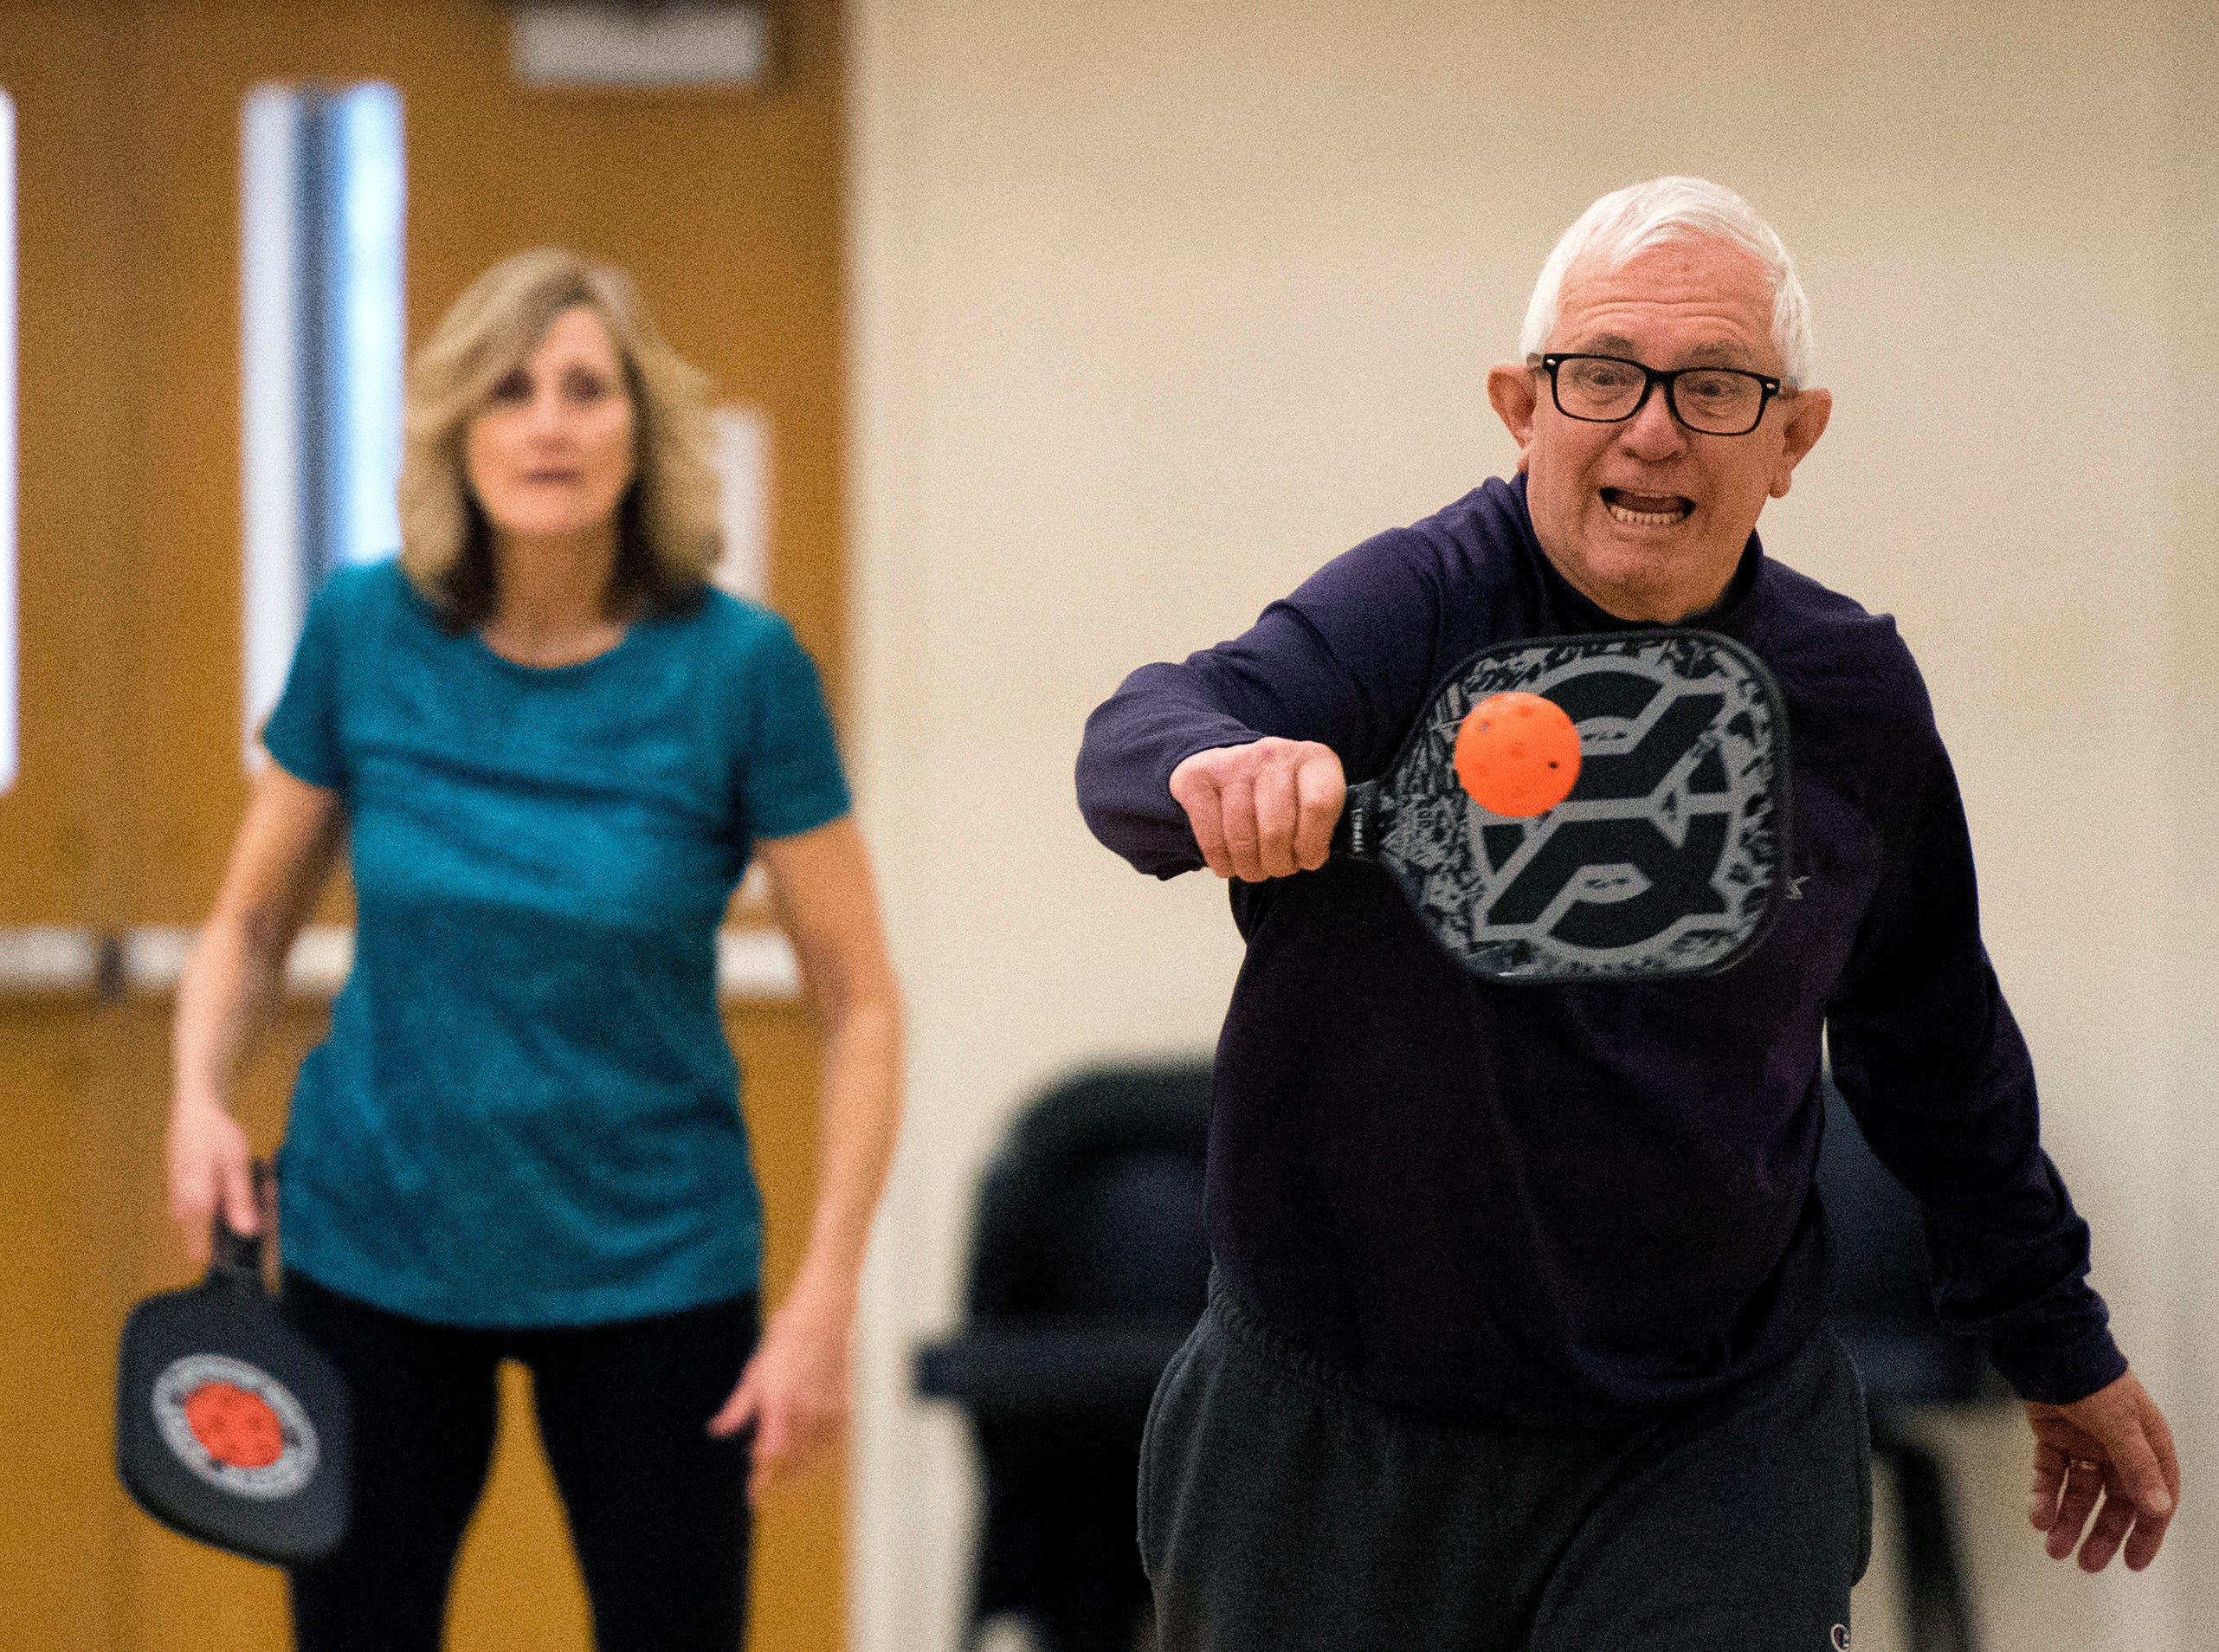 James Brown, front, returns the ball while playing a game of pickle ball with partner Jean Schmitt, back, at St. Peter's Methodist Church Wednesday, March 20, 2019.